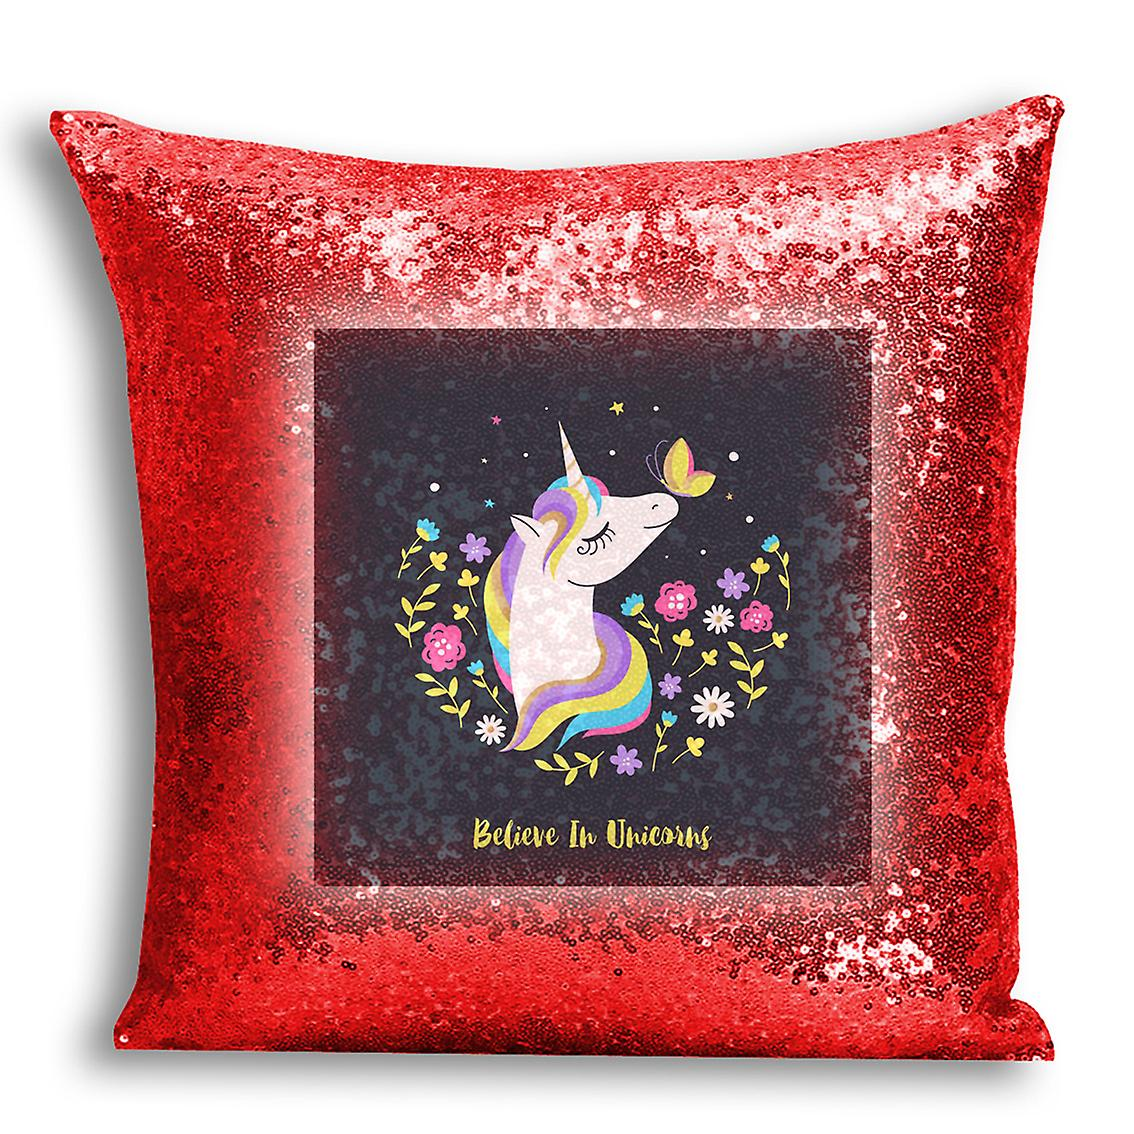 tronixsUnicorn Decor Printed For 14 Sequin Inserted With I CushionPillow Design Home Red Cover f7gbmIYyv6